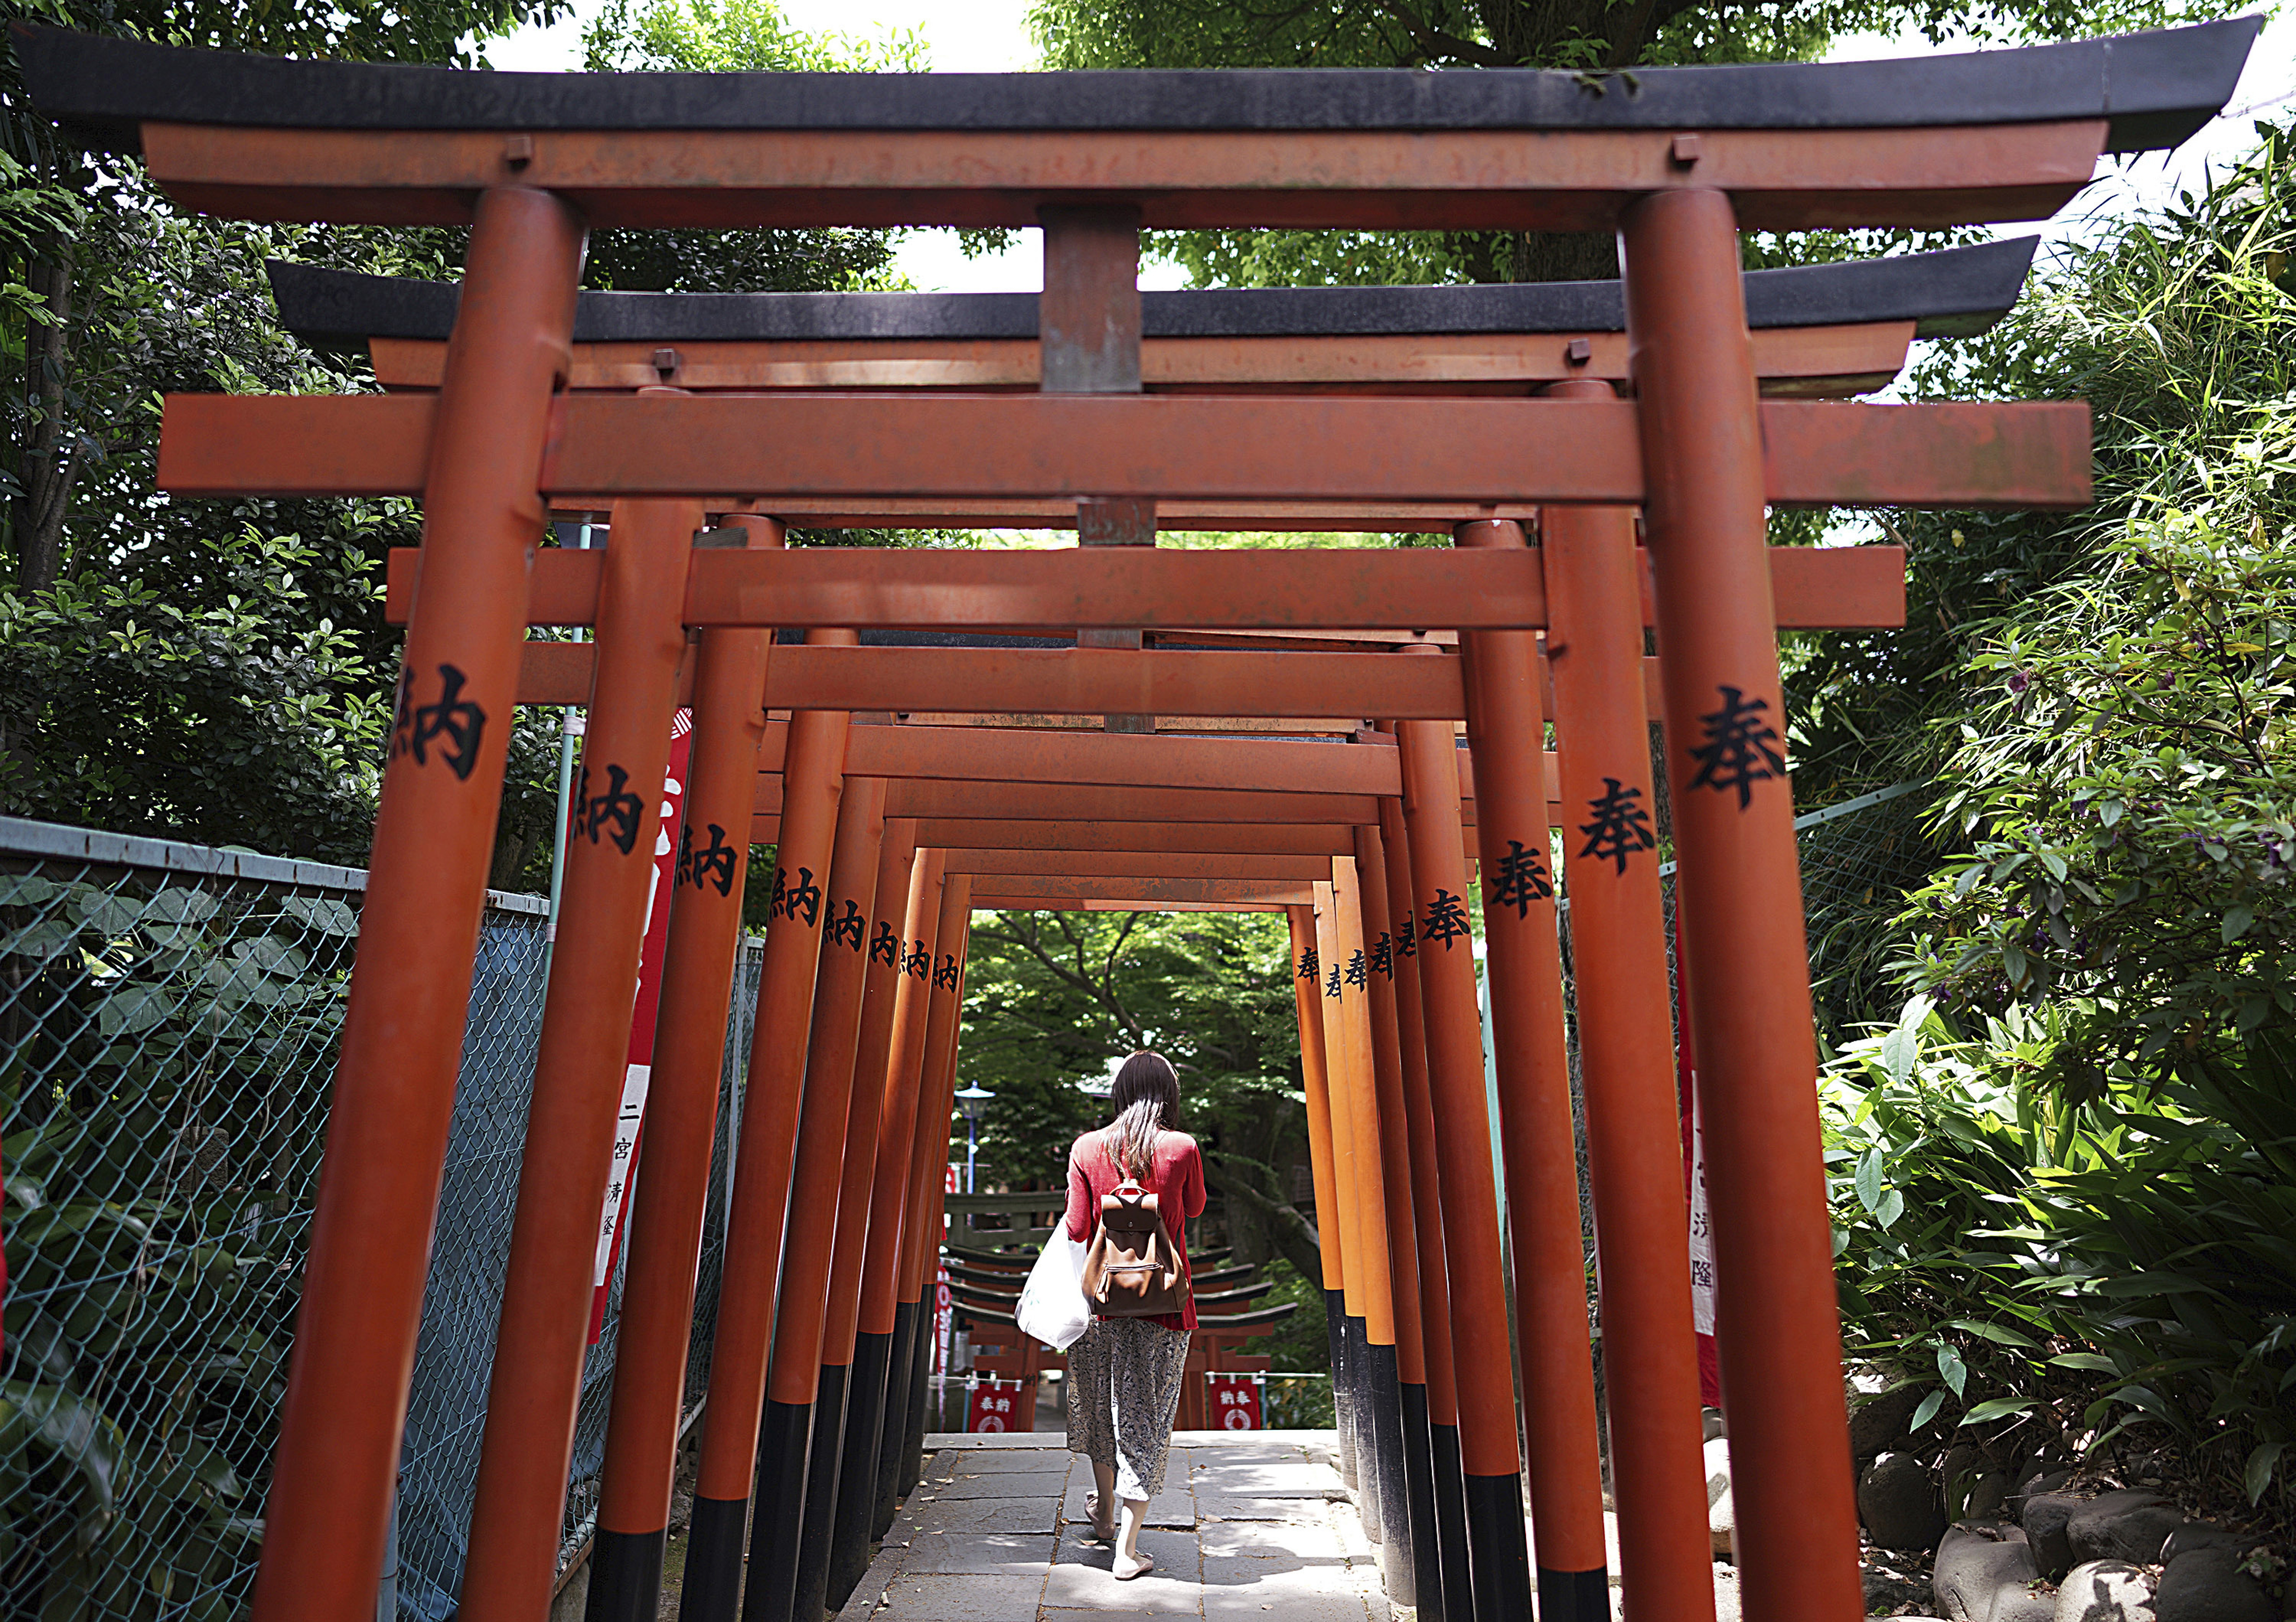 A visitor walks through a path lined with small shrine arches or